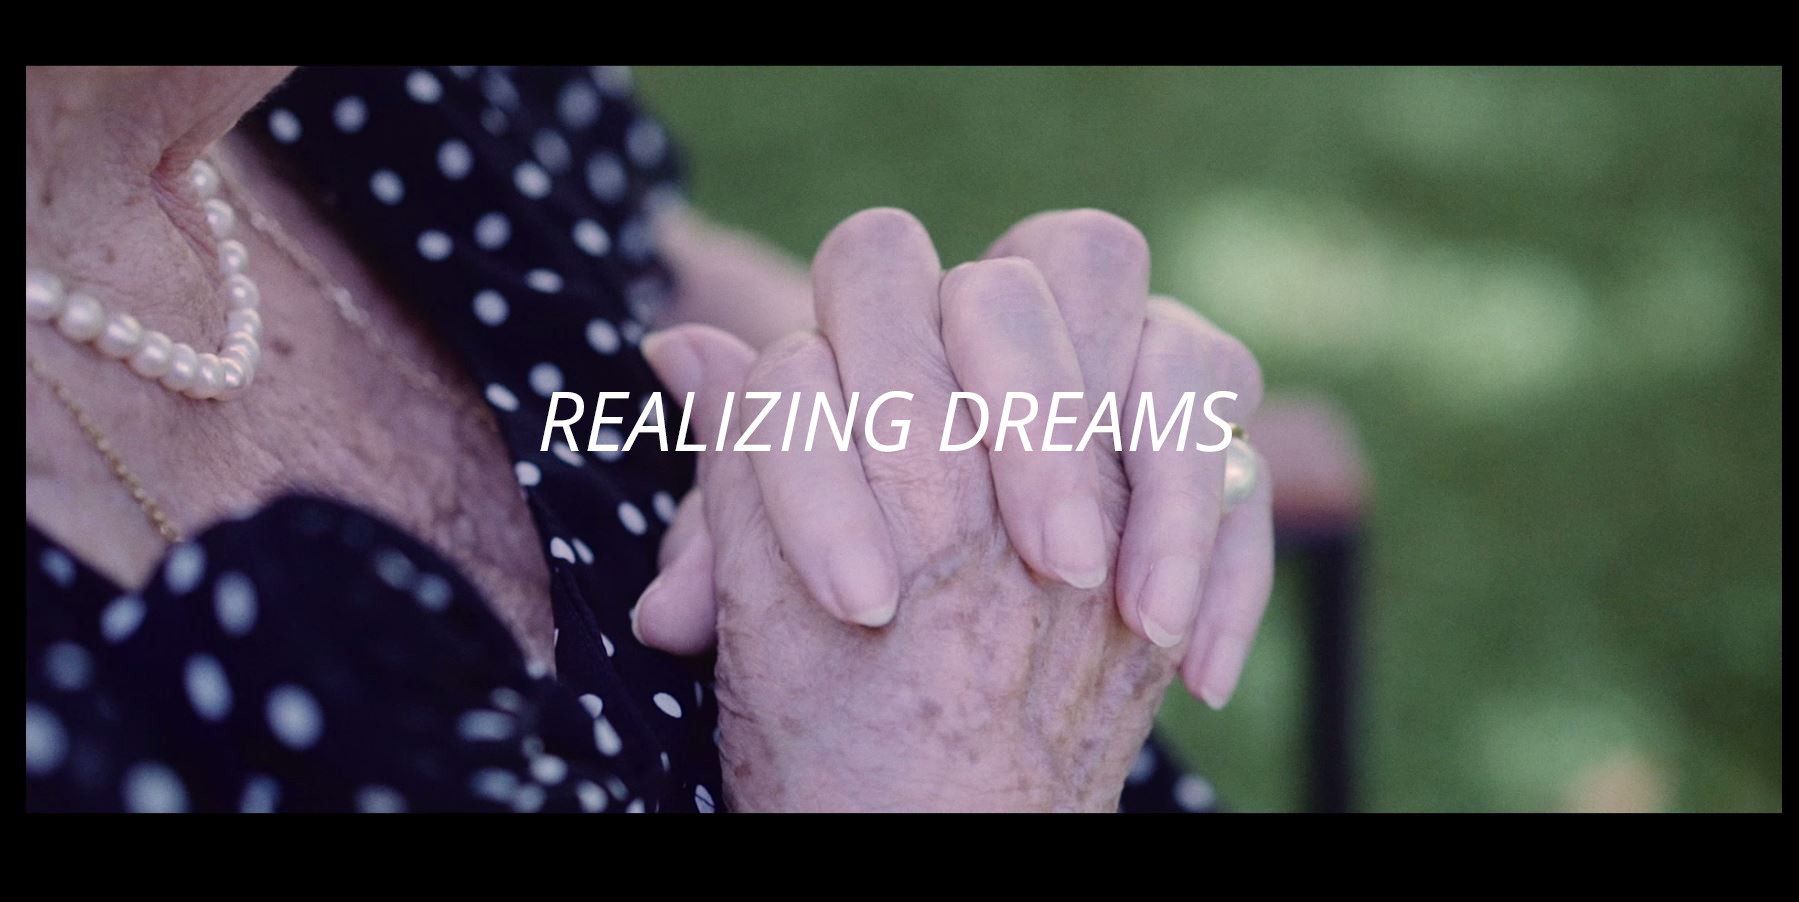 realizing-dreams-corporative-video-bronces-mestre